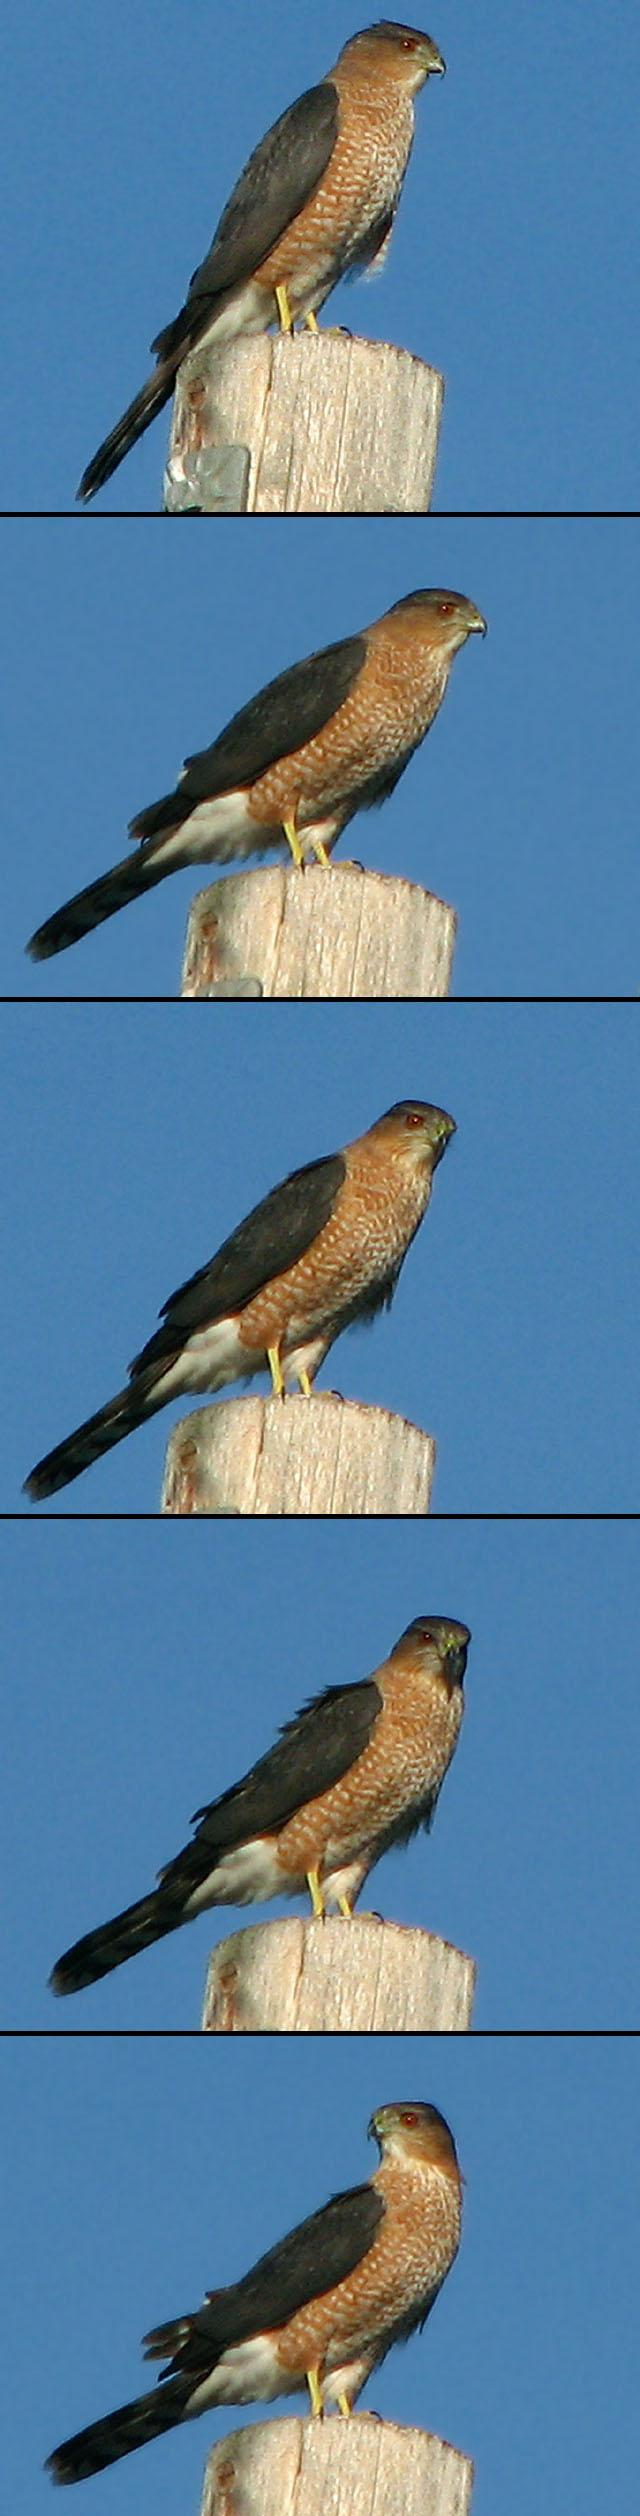 Cooper's Hawk Collage by nelsone